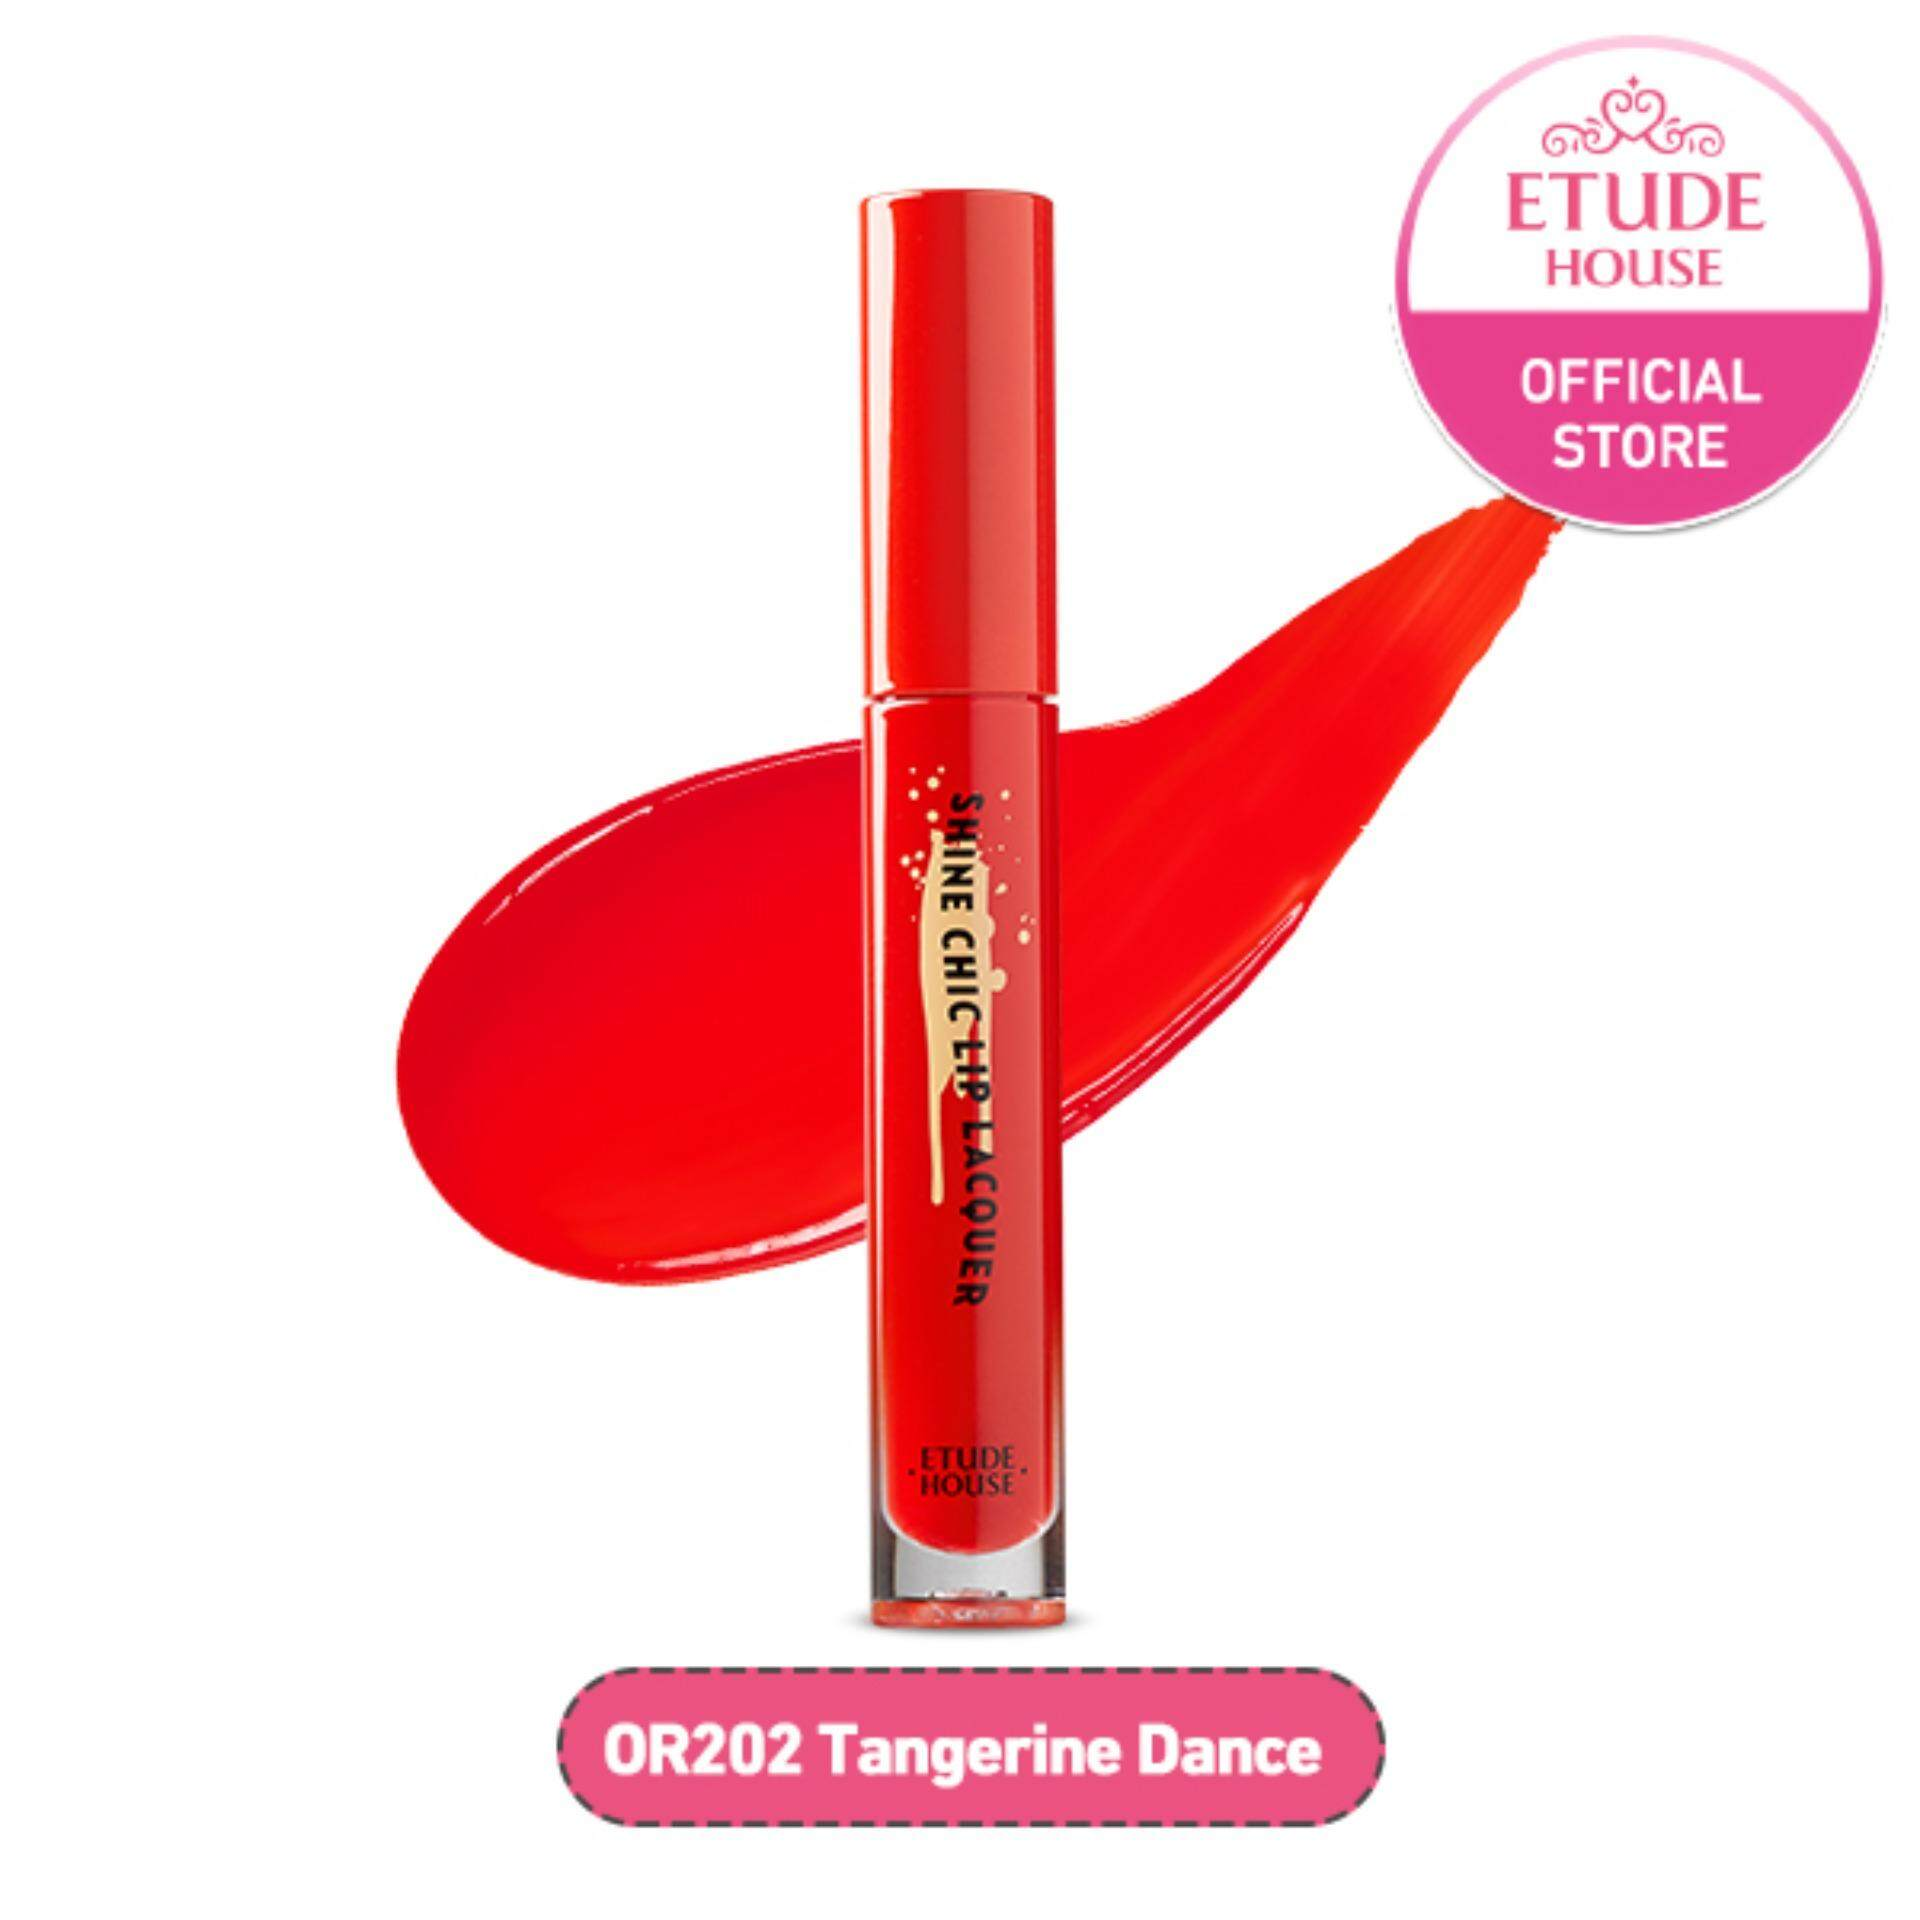 ETUDE HOUSE Shine Chic Lip Lacquer (3.2 g)